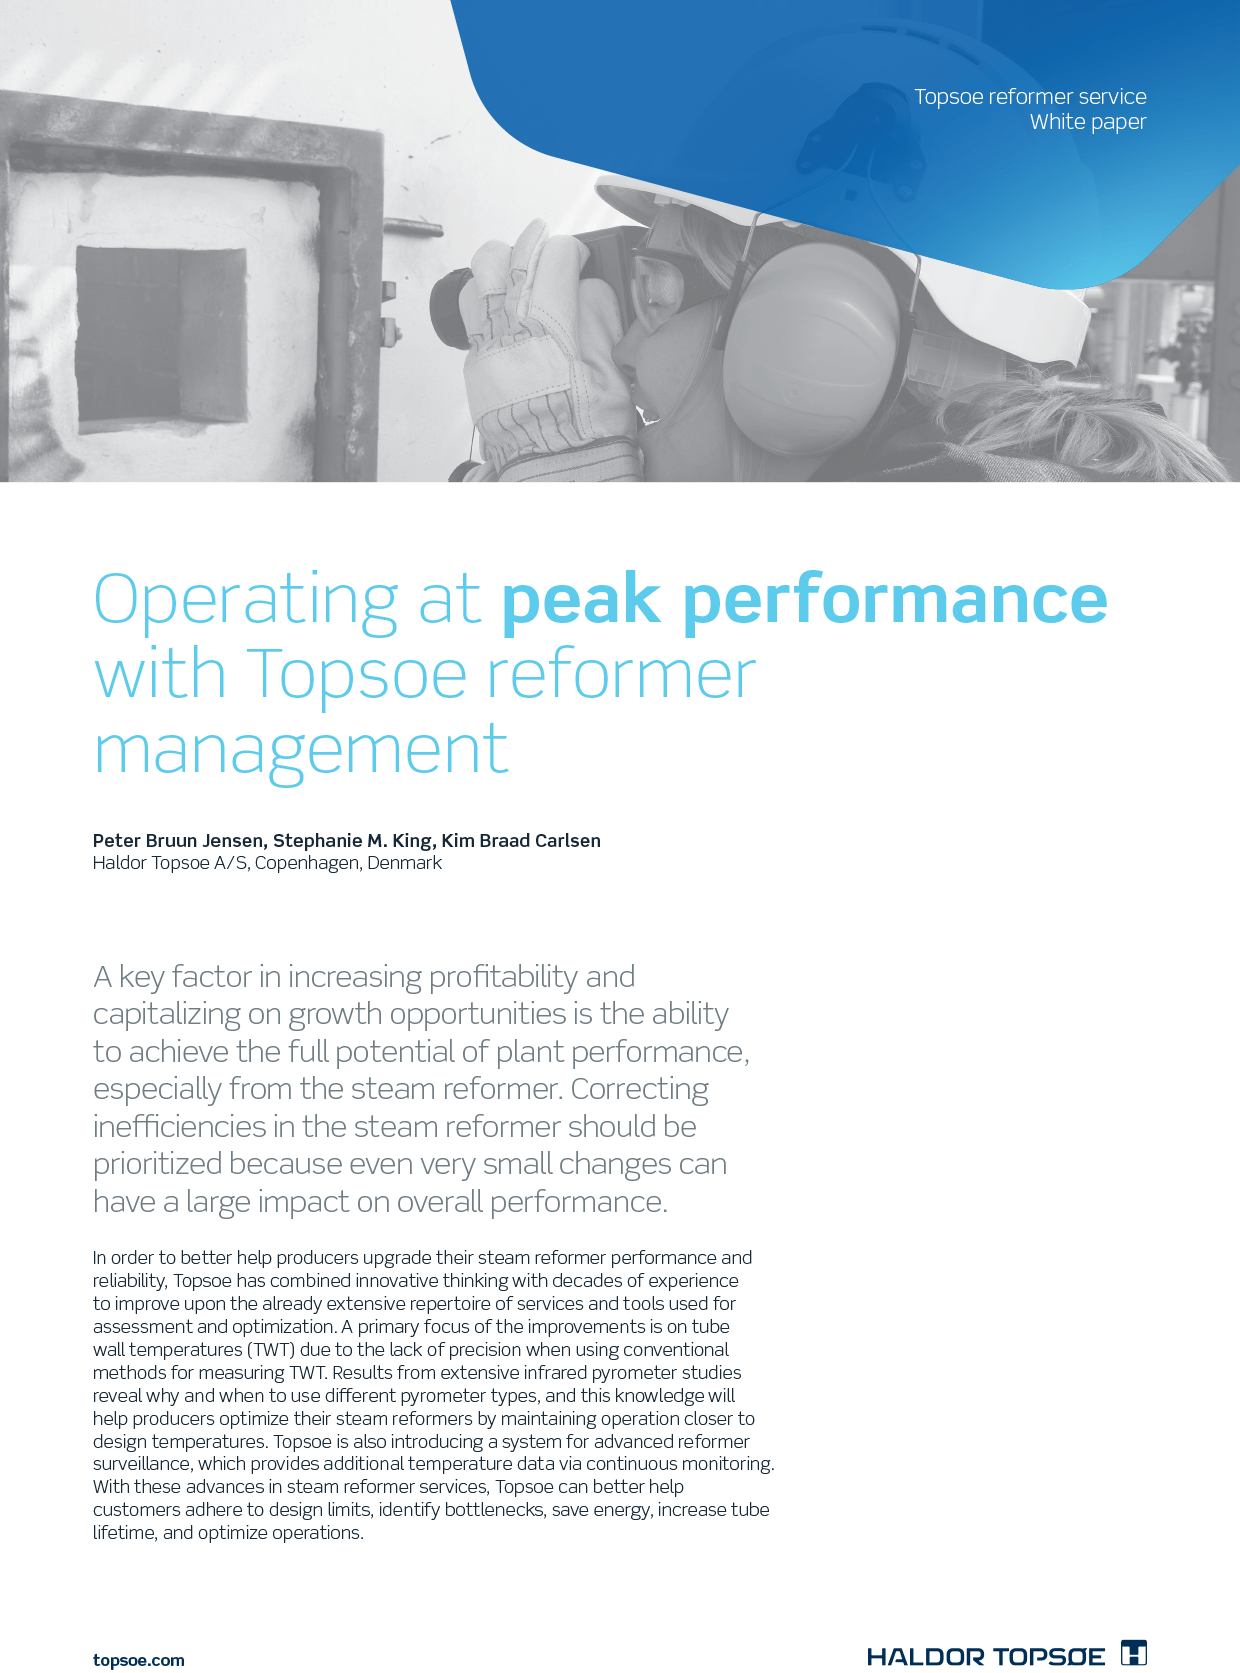 Operating at peak performance with Topsoe reformer management